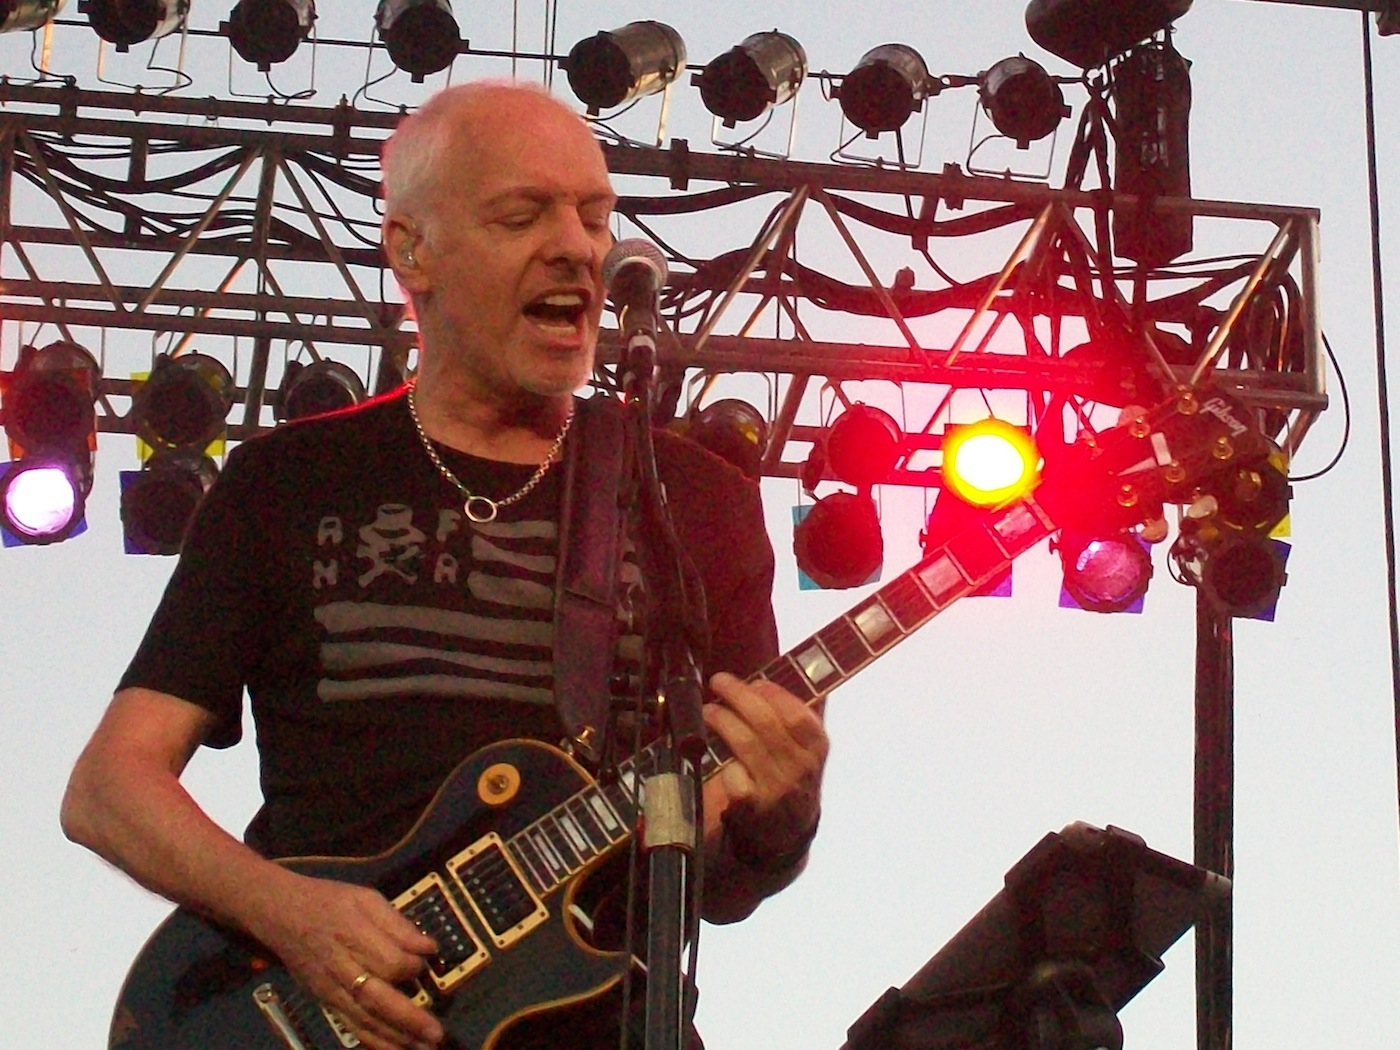 Peter Frampton performs at Artpark on Aug. 7.